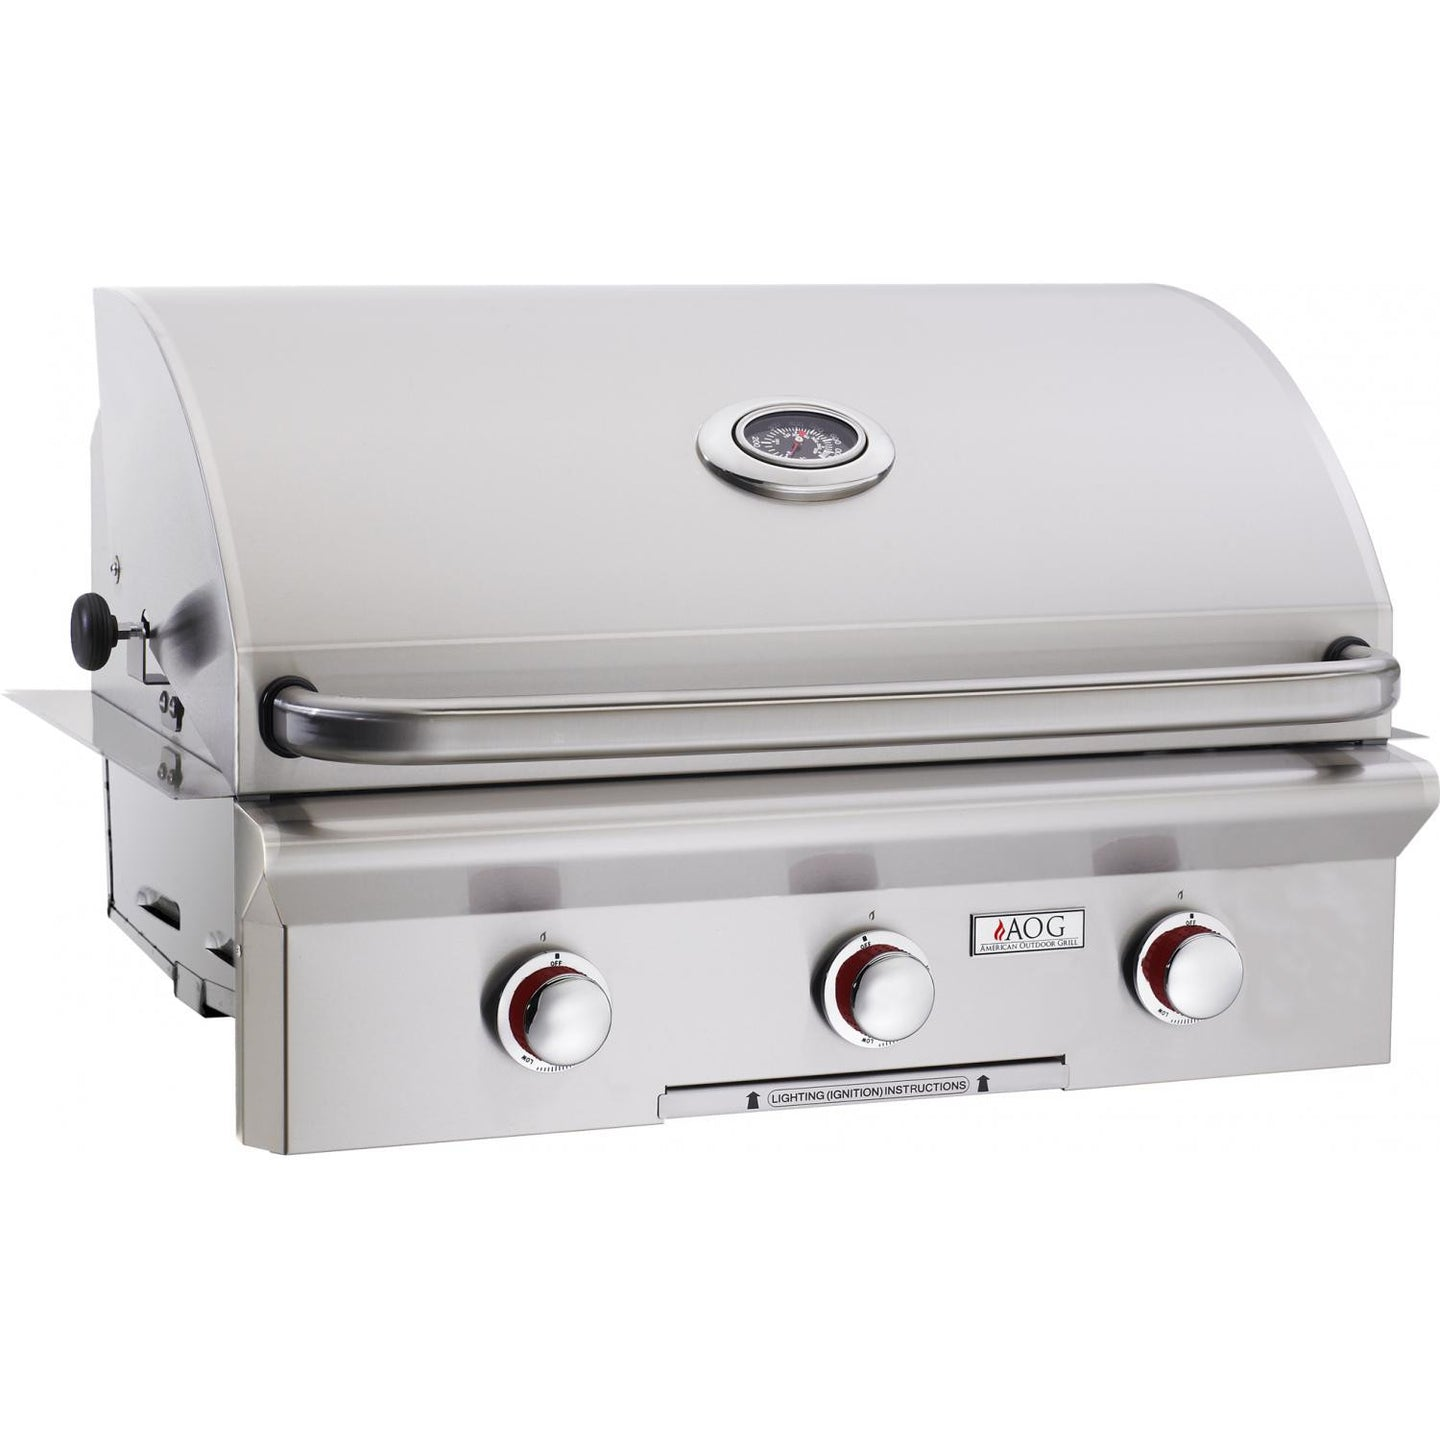 American Outdoor Grill T-Series 30-Inch 3-Burner Built-In Gas Grill - 30PBT-OOSP